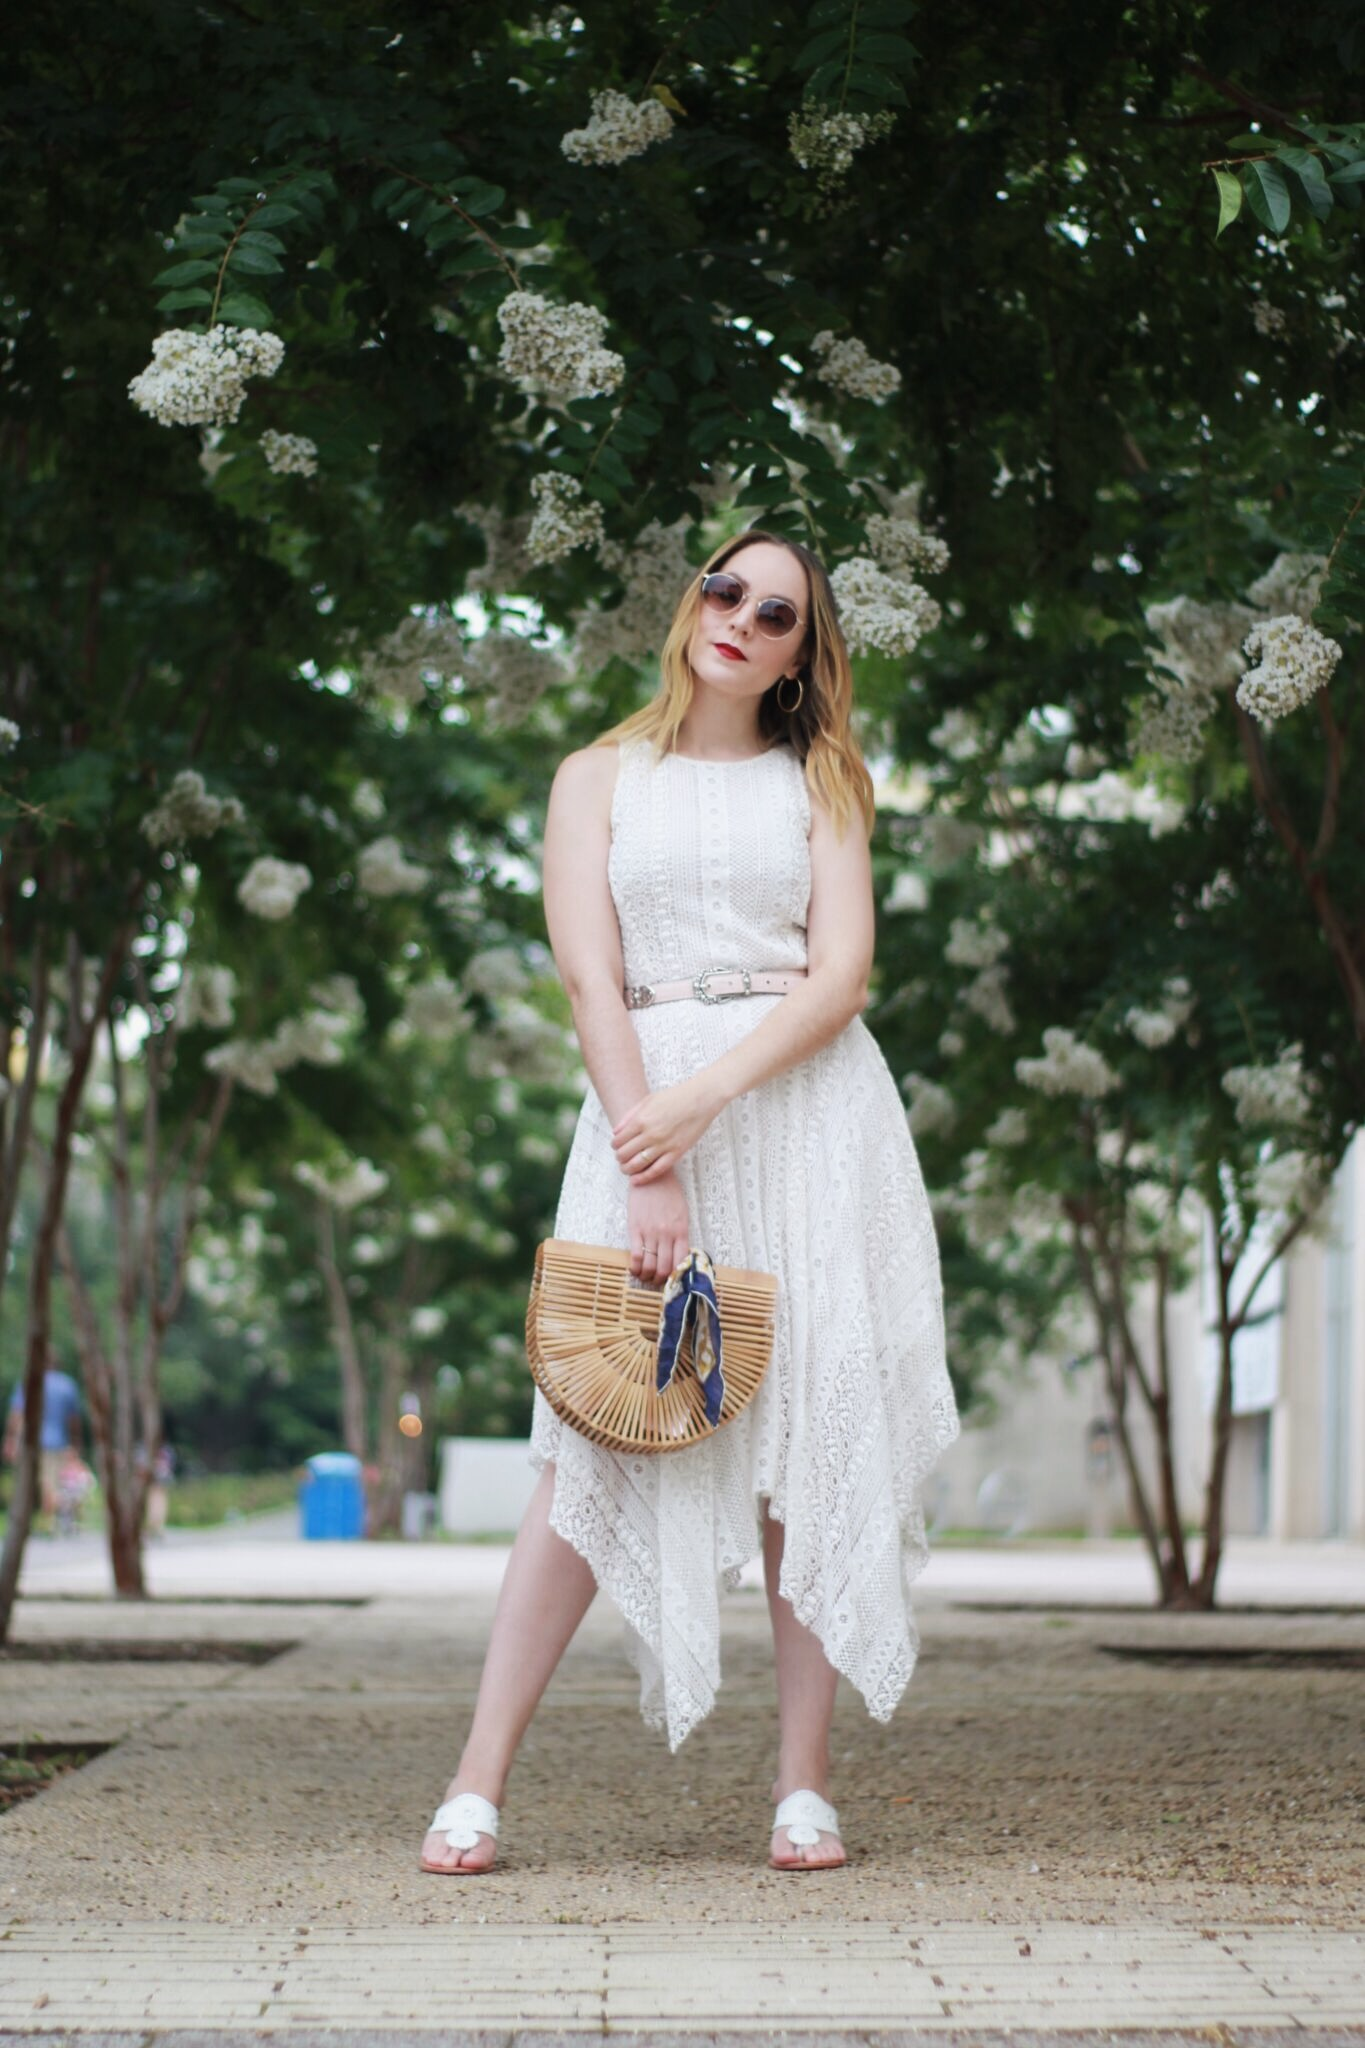 How to Accessorize a Little White Dress